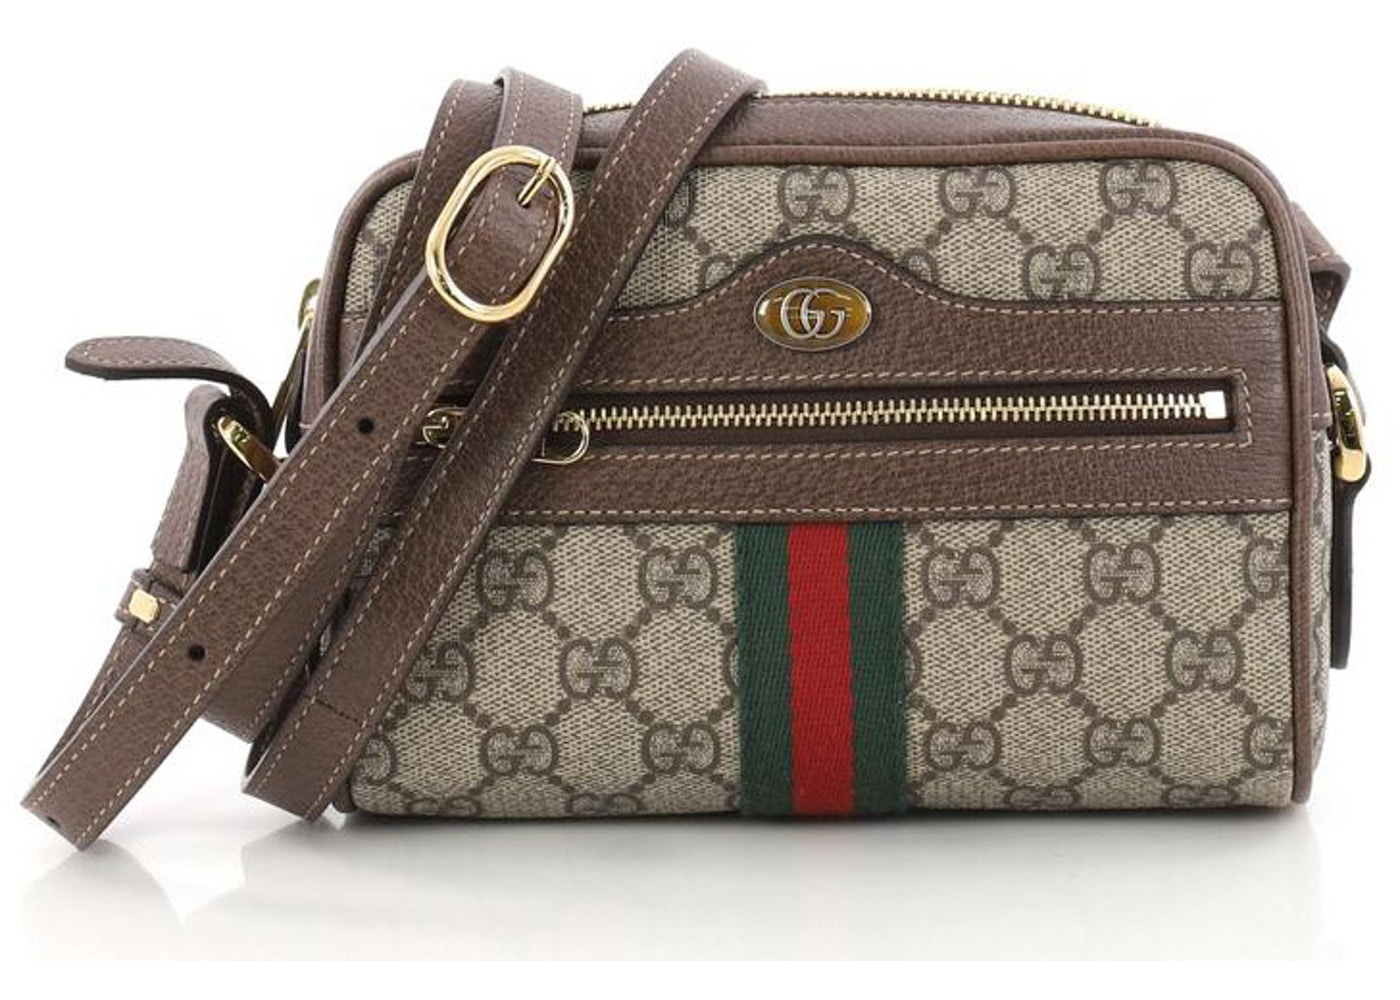 42fdc3a9fdc8 Buy & Sell Gucci Handbags - New Lowest Asks